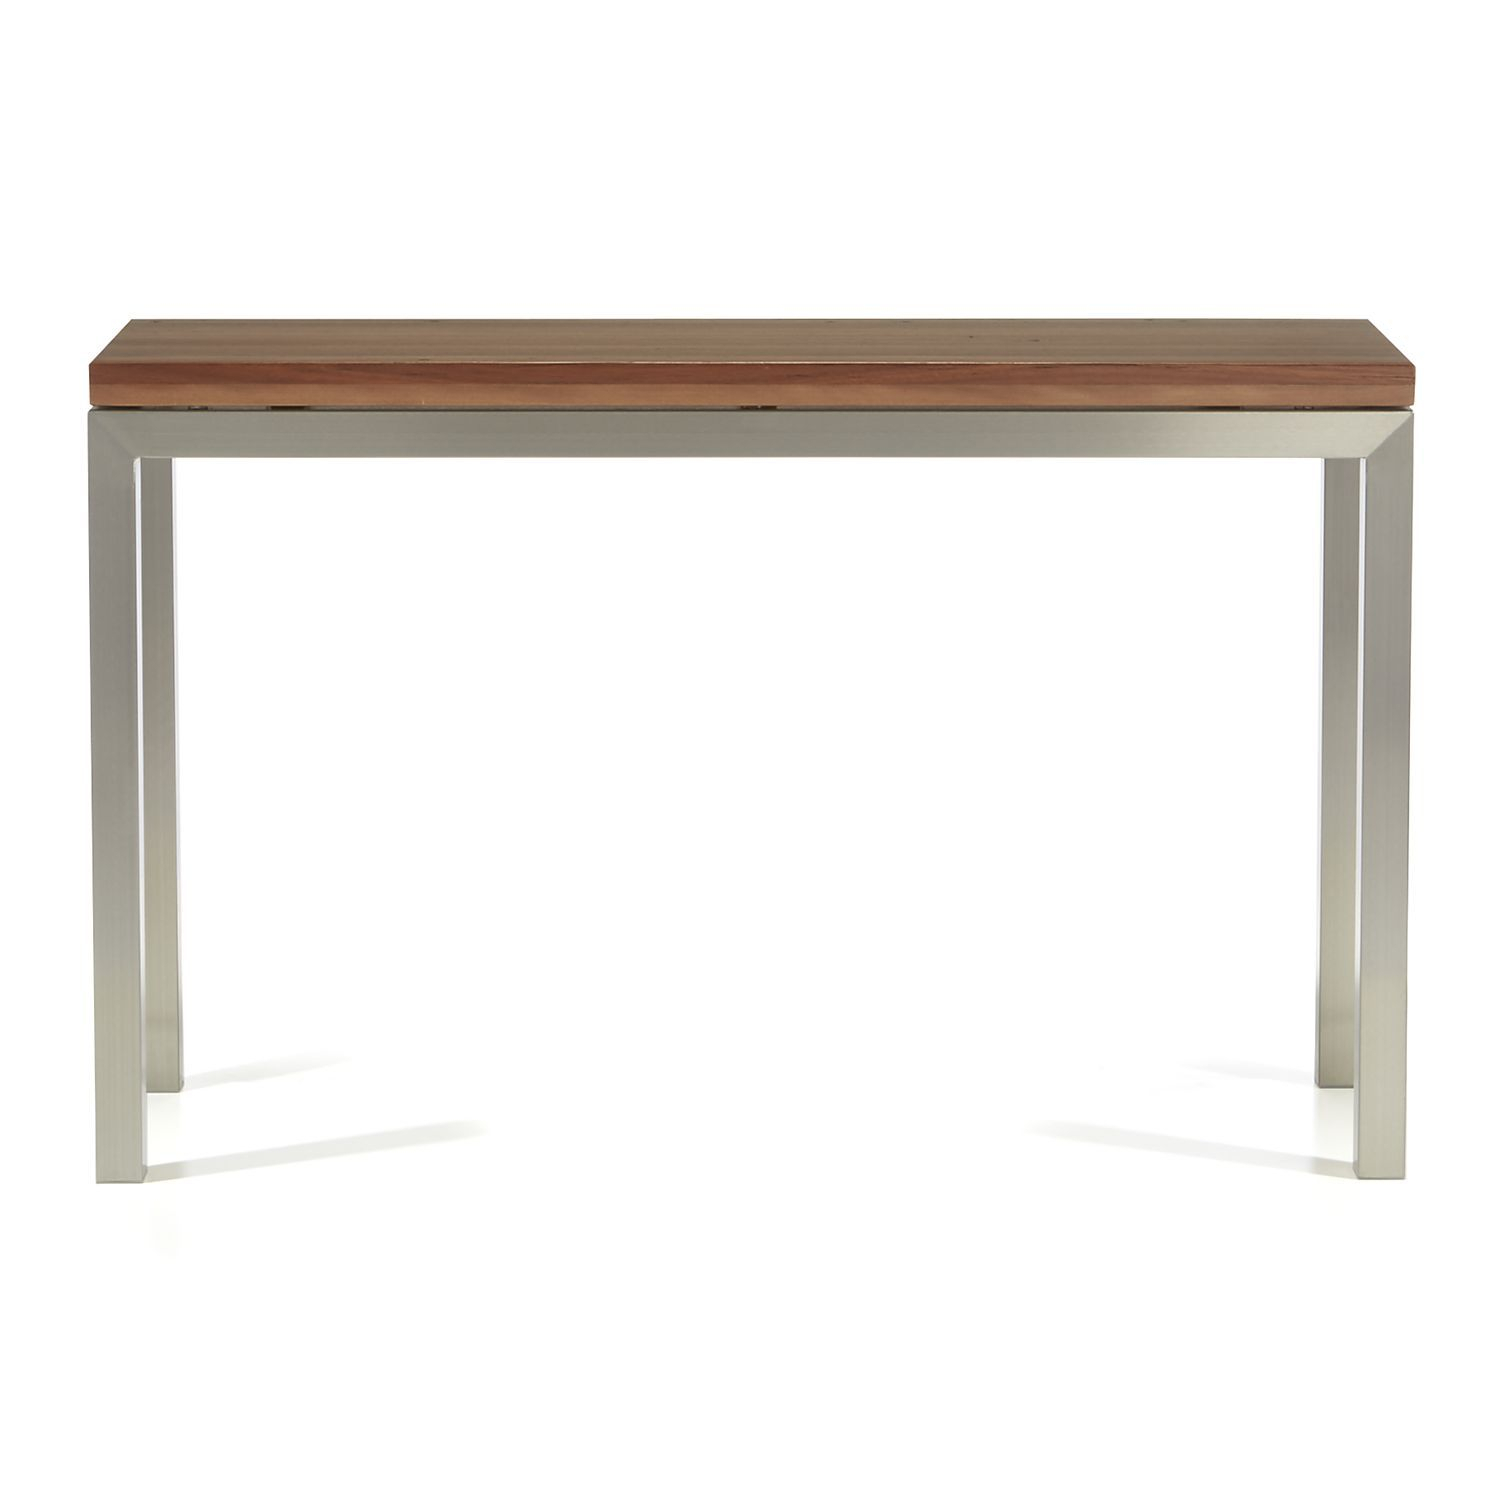 Parsons Reclaimed Wood Top/ Stainless Steel Base 48X16 Console throughout Parsons Concrete Top & Stainless Steel Base 48X16 Console Tables (Image 24 of 30)